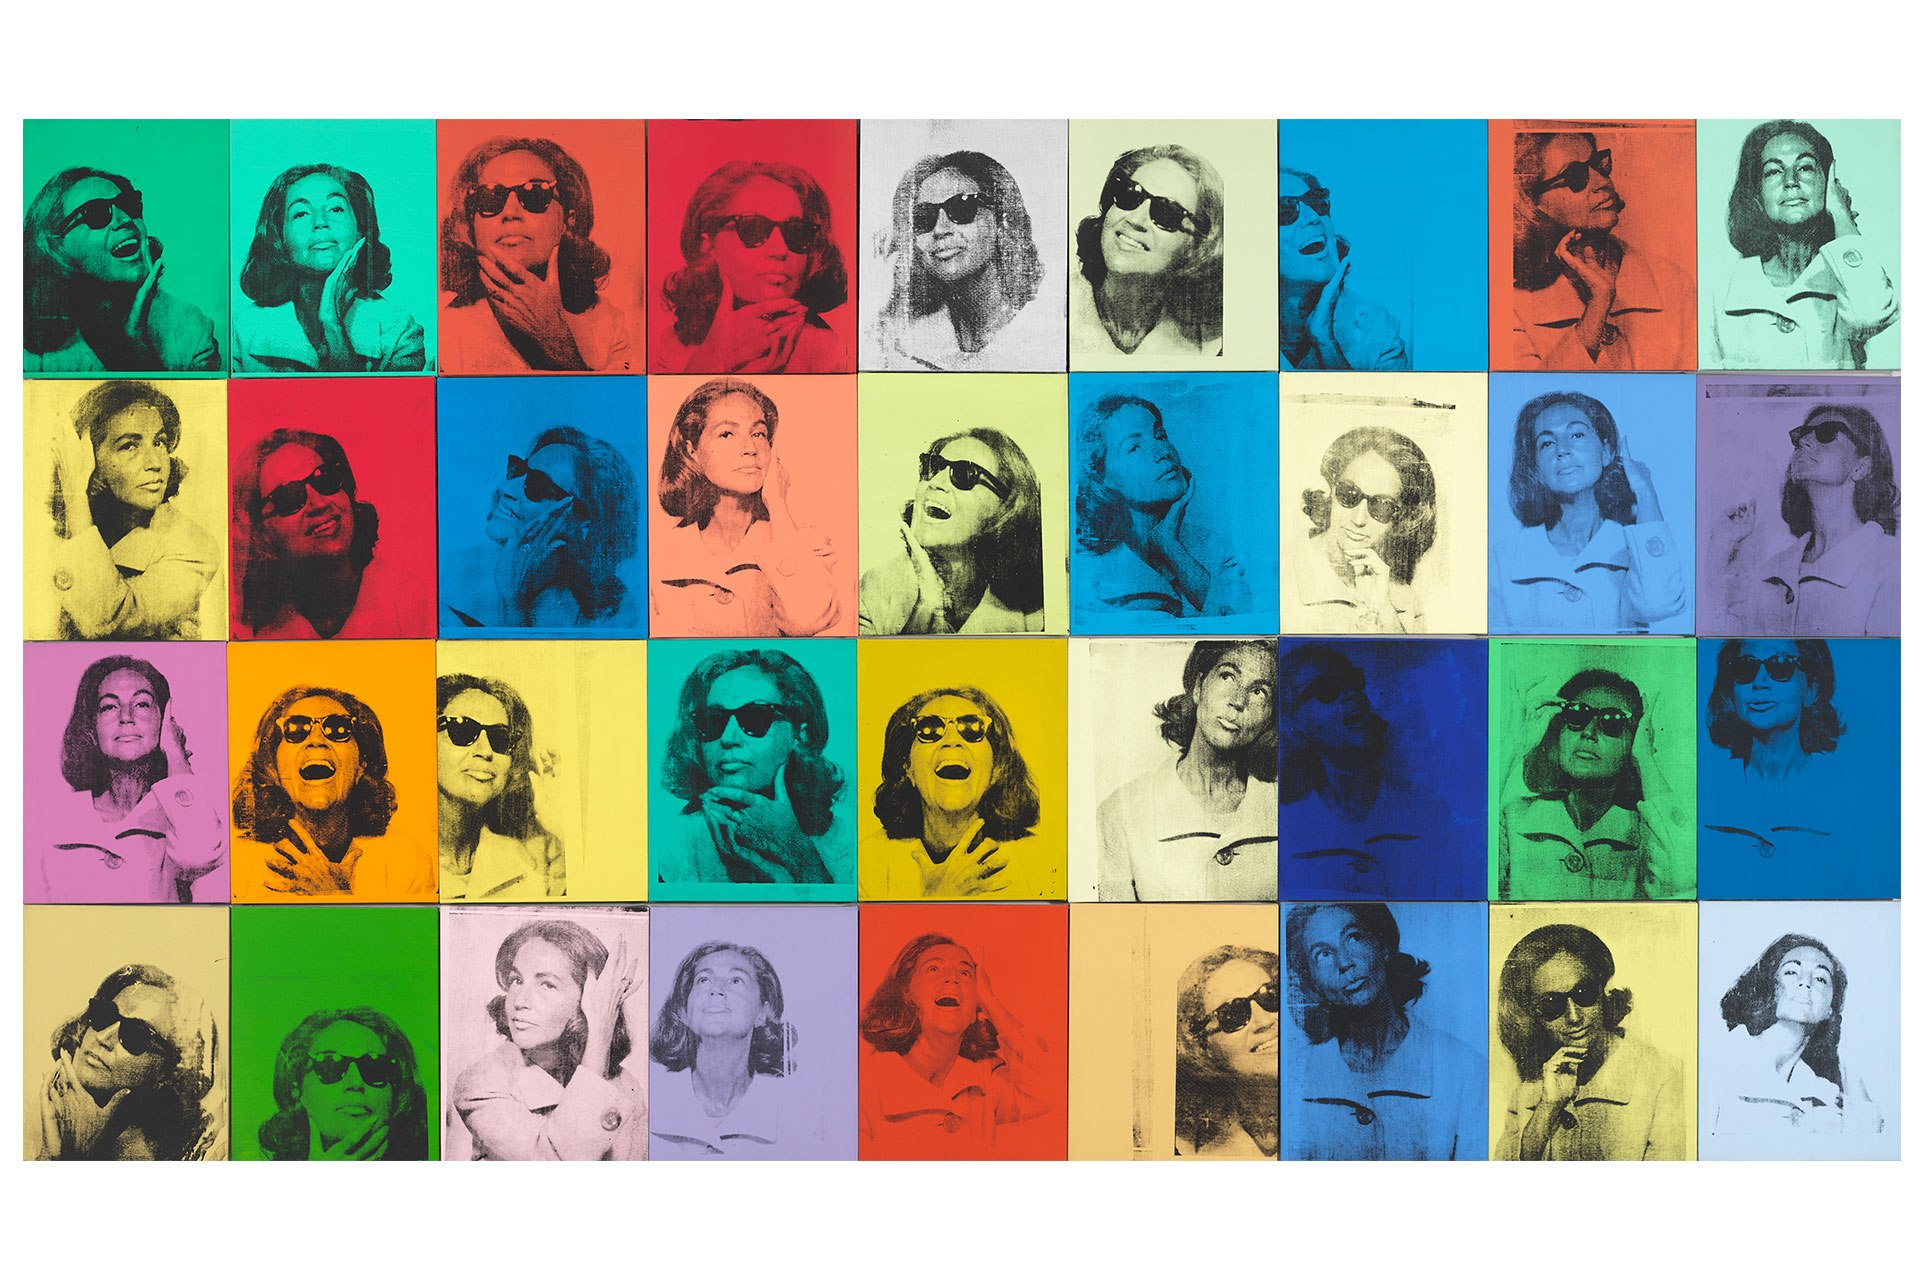 Why Andy Warhol continues to inspire